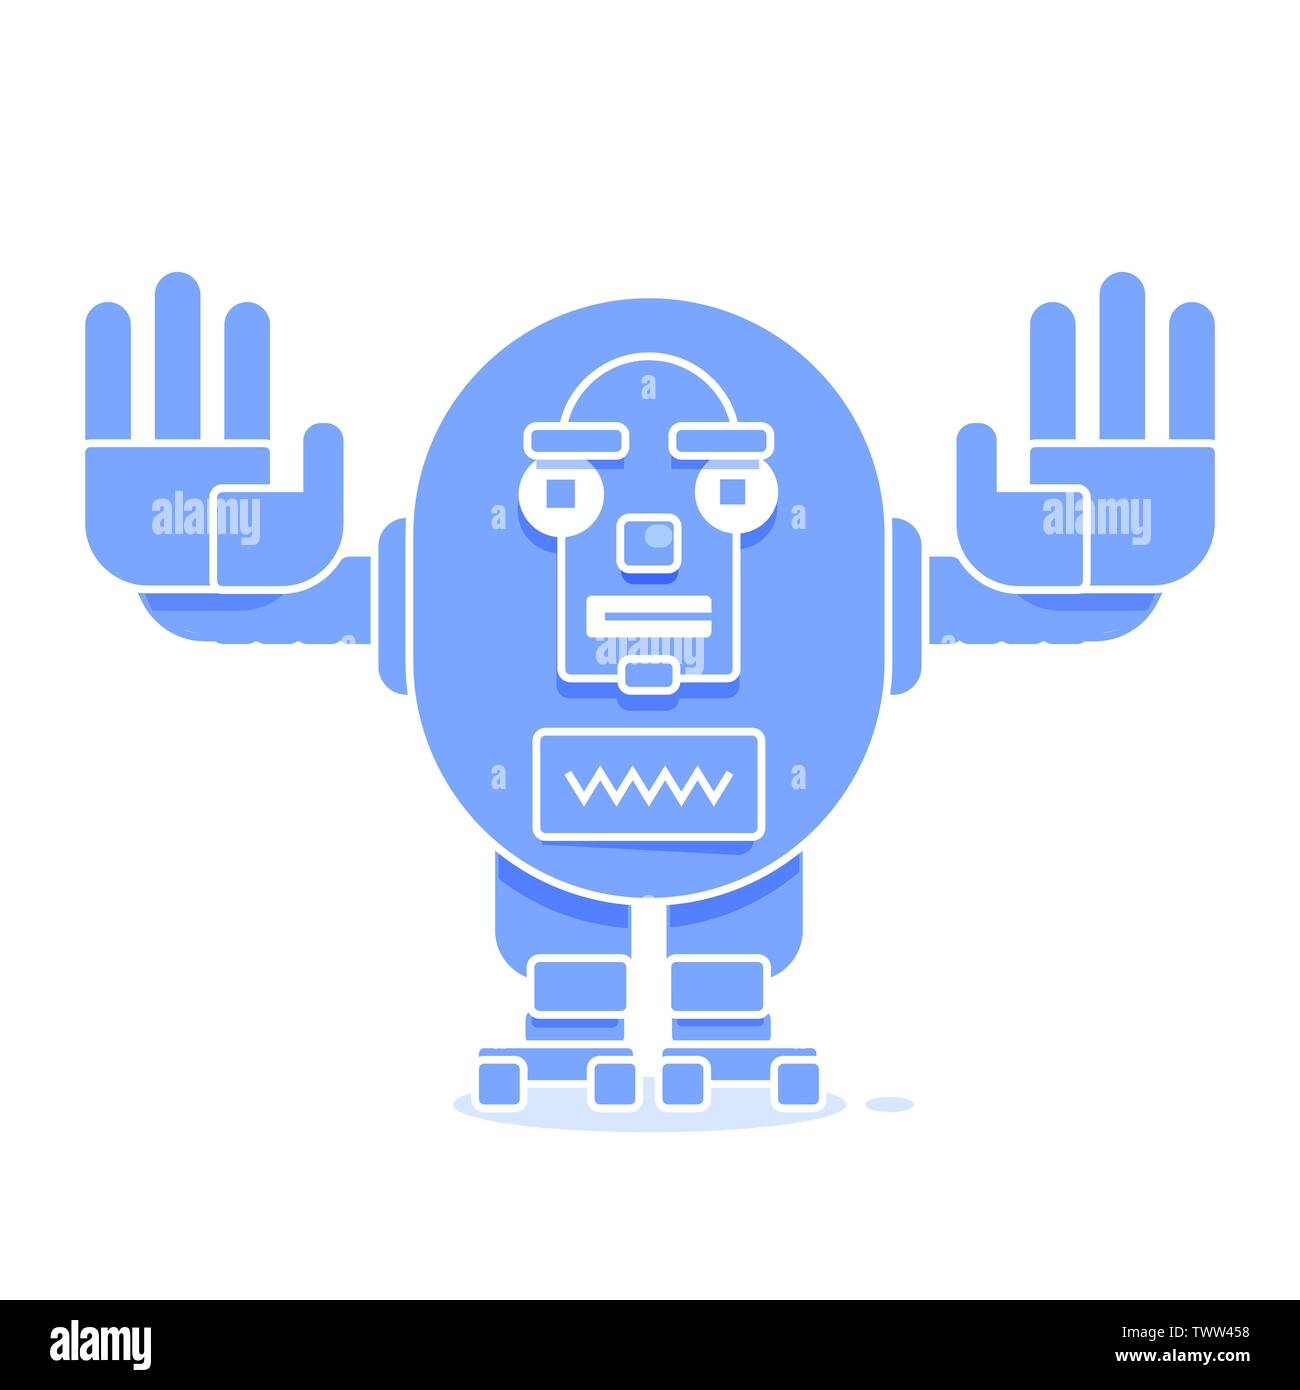 Chatter Bot Stock Photos & Chatter Bot Stock Images - Page 2 - Alamy